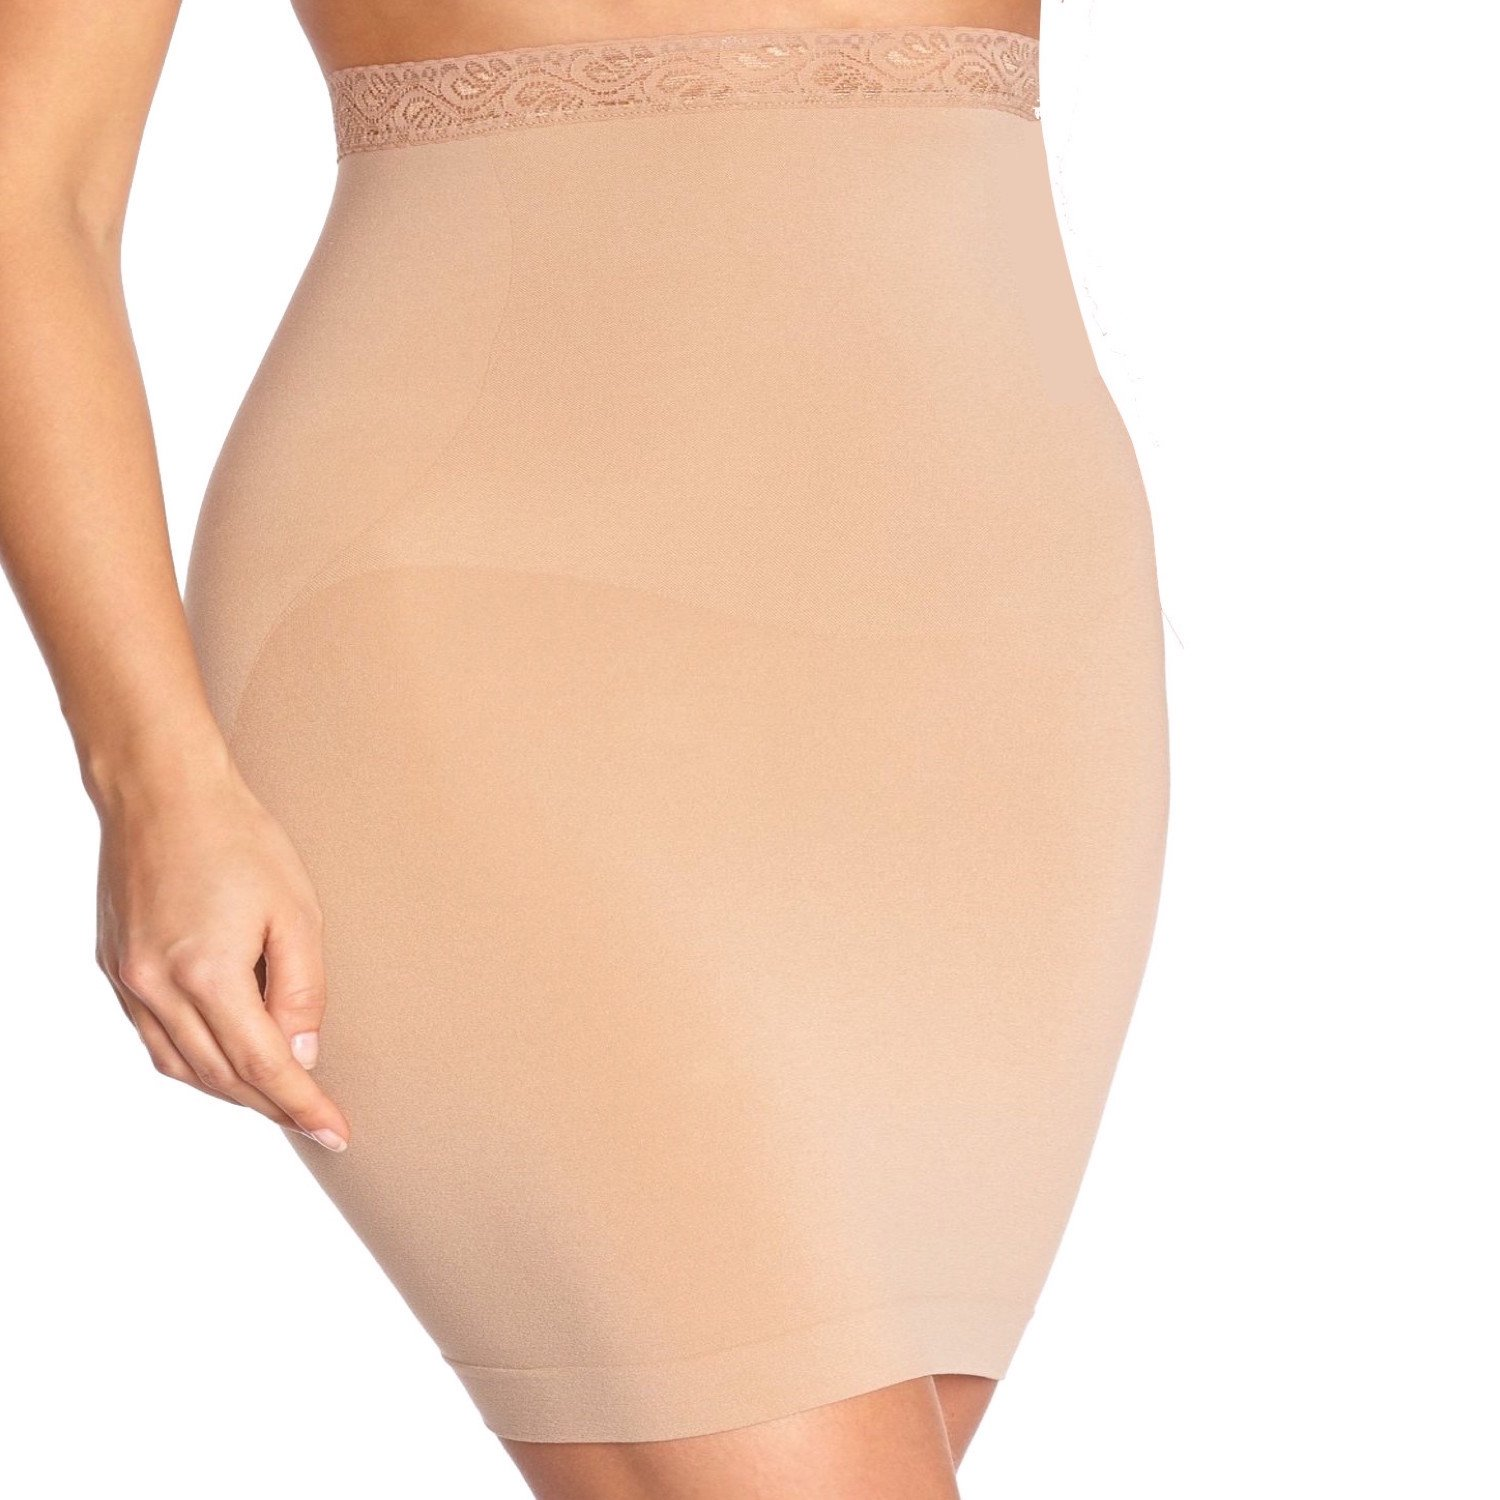 Body Wrap Plus Size Lace Trimmed High Waist Half Slip Shaper – Onyx Body Bracelet Series – Slim Lift and Shape – Seamless 100% Invisible – Women – Control Level Firm – Beige and Black BW48.832BB